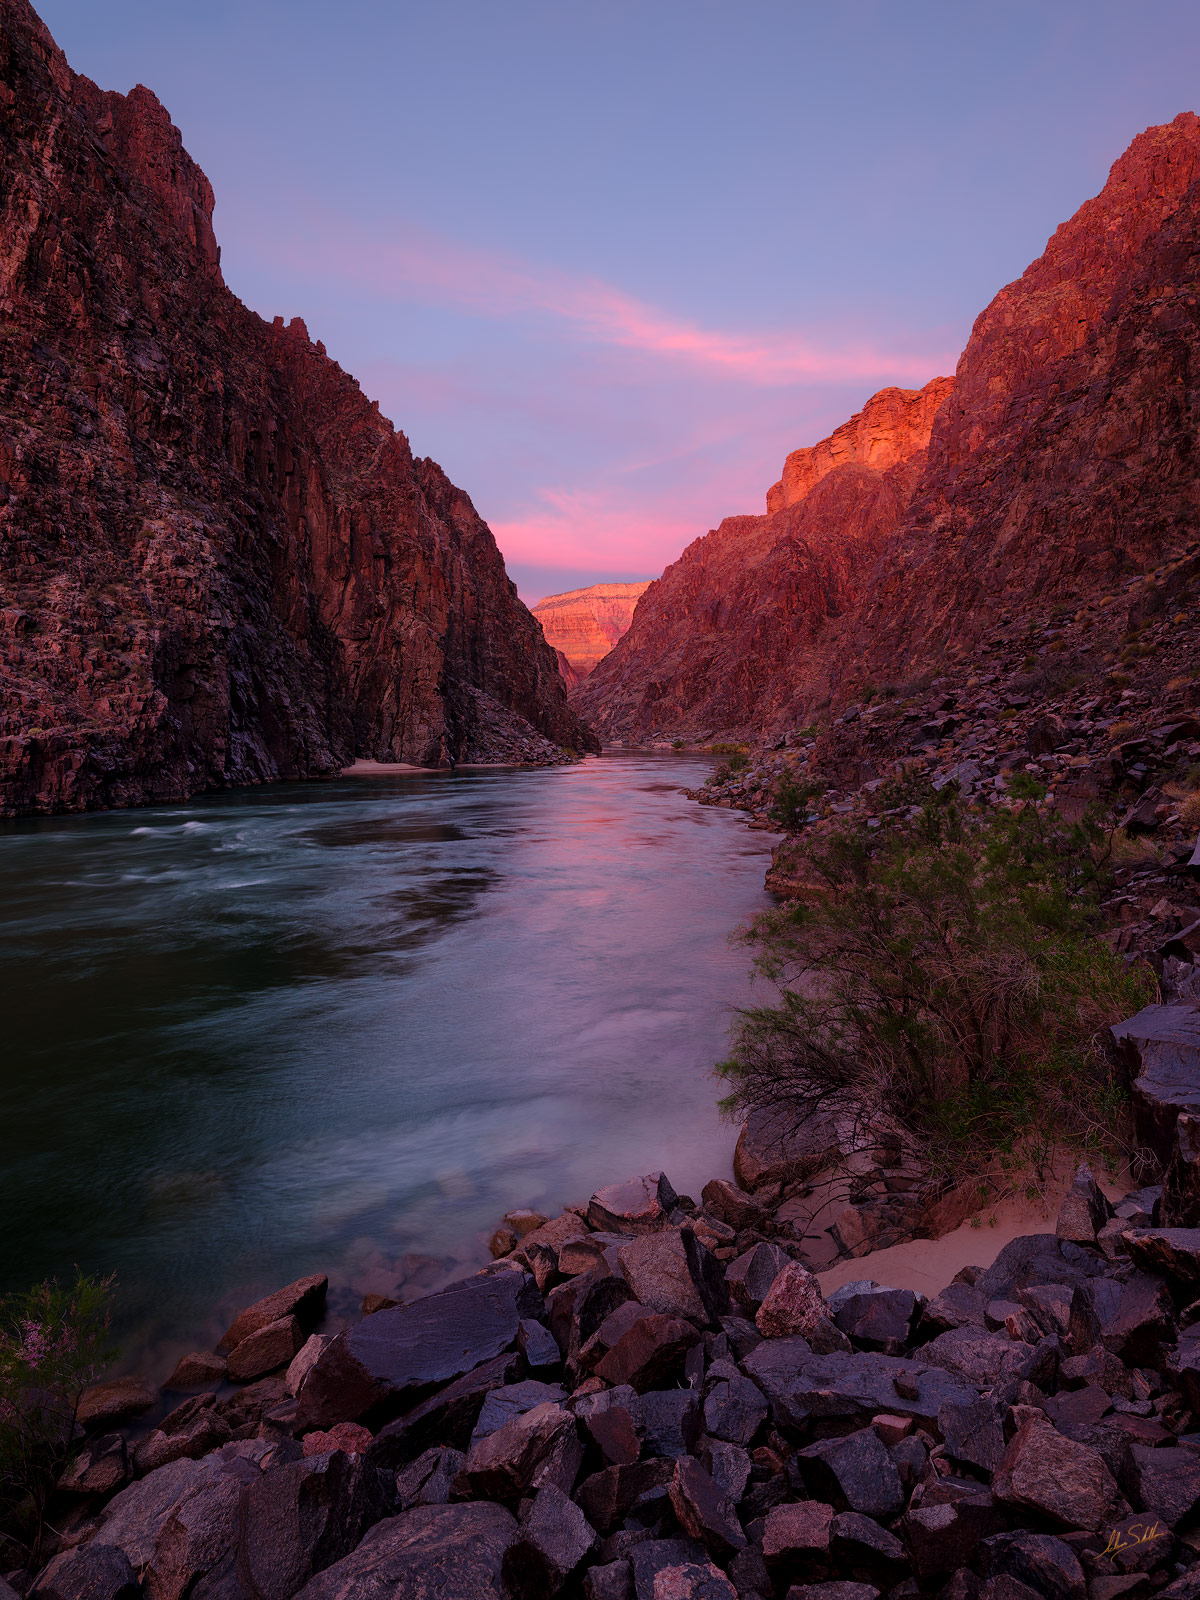 First light begins to paint distant cliffs in warm rosy hues. From Trinity Creek along the Colorado River deep within the Granite...